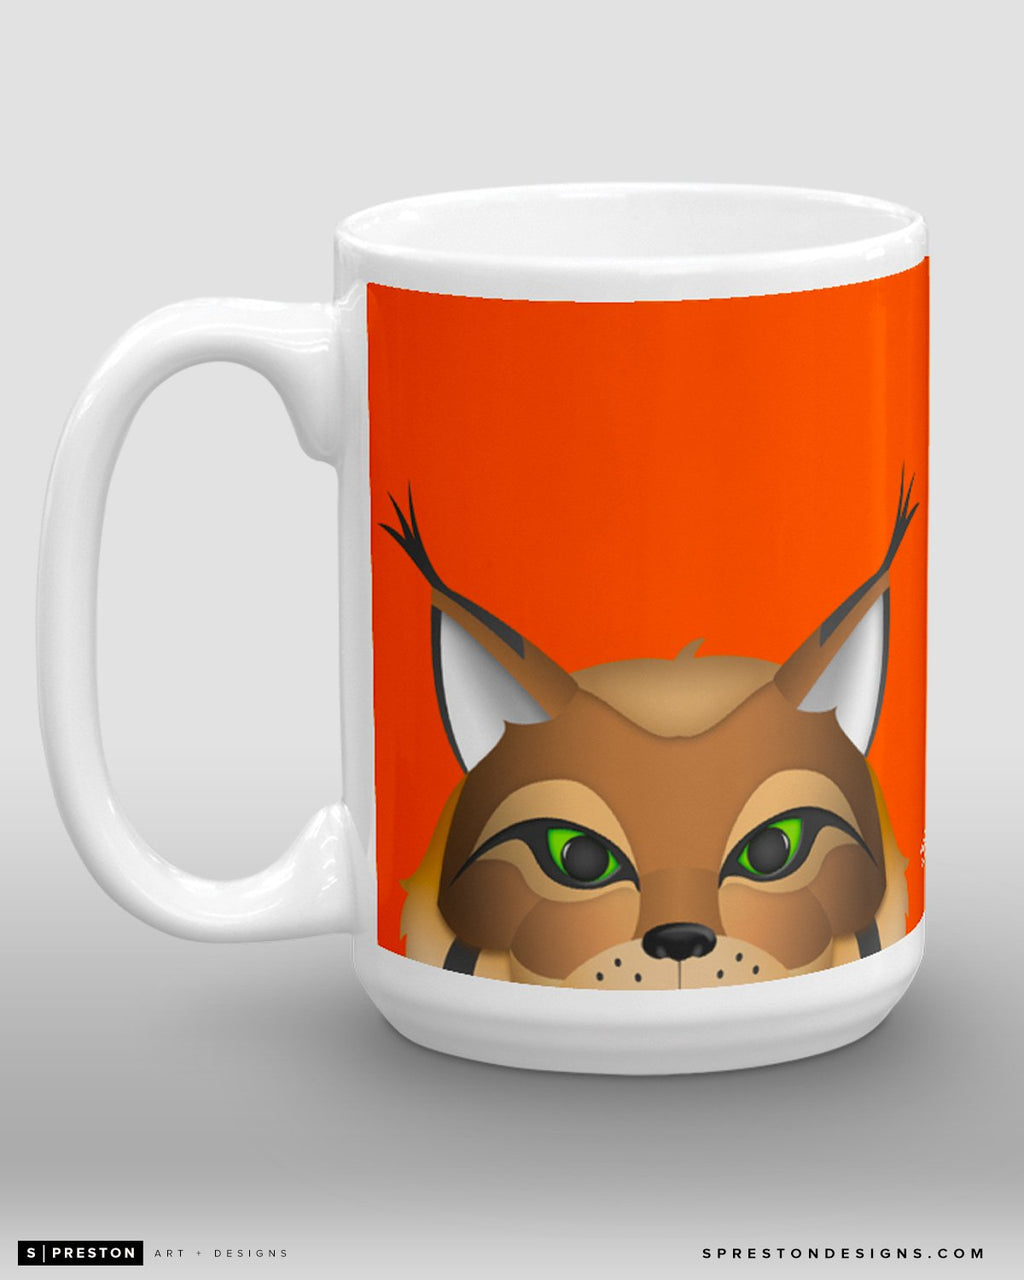 Minimalist Hunter Coffee Mug - NHL Licensed - Edmonton Oilers Mascot